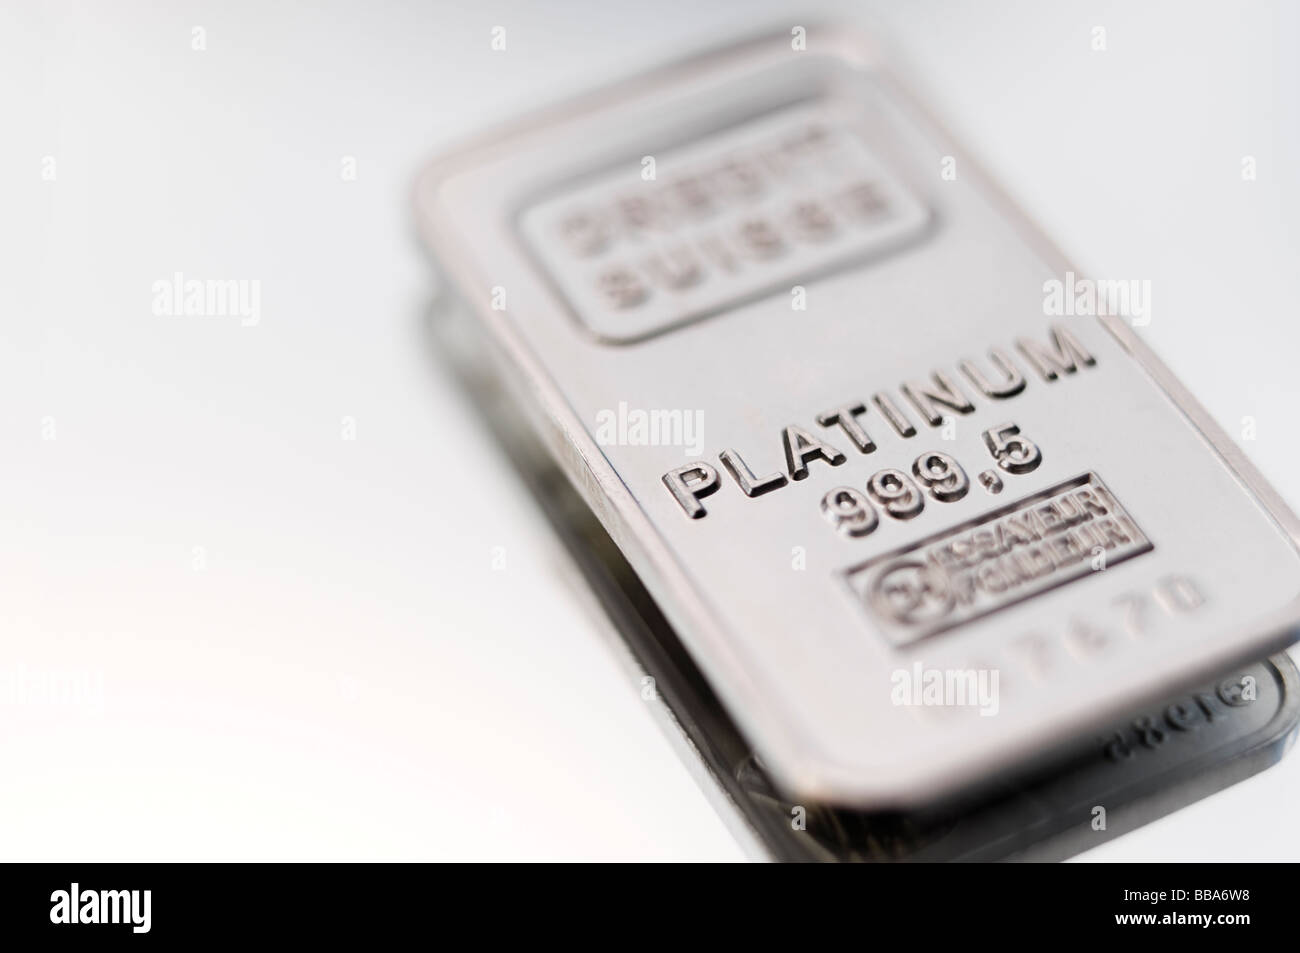 Small bar or ingot of Platinum Bullion - Stock Image